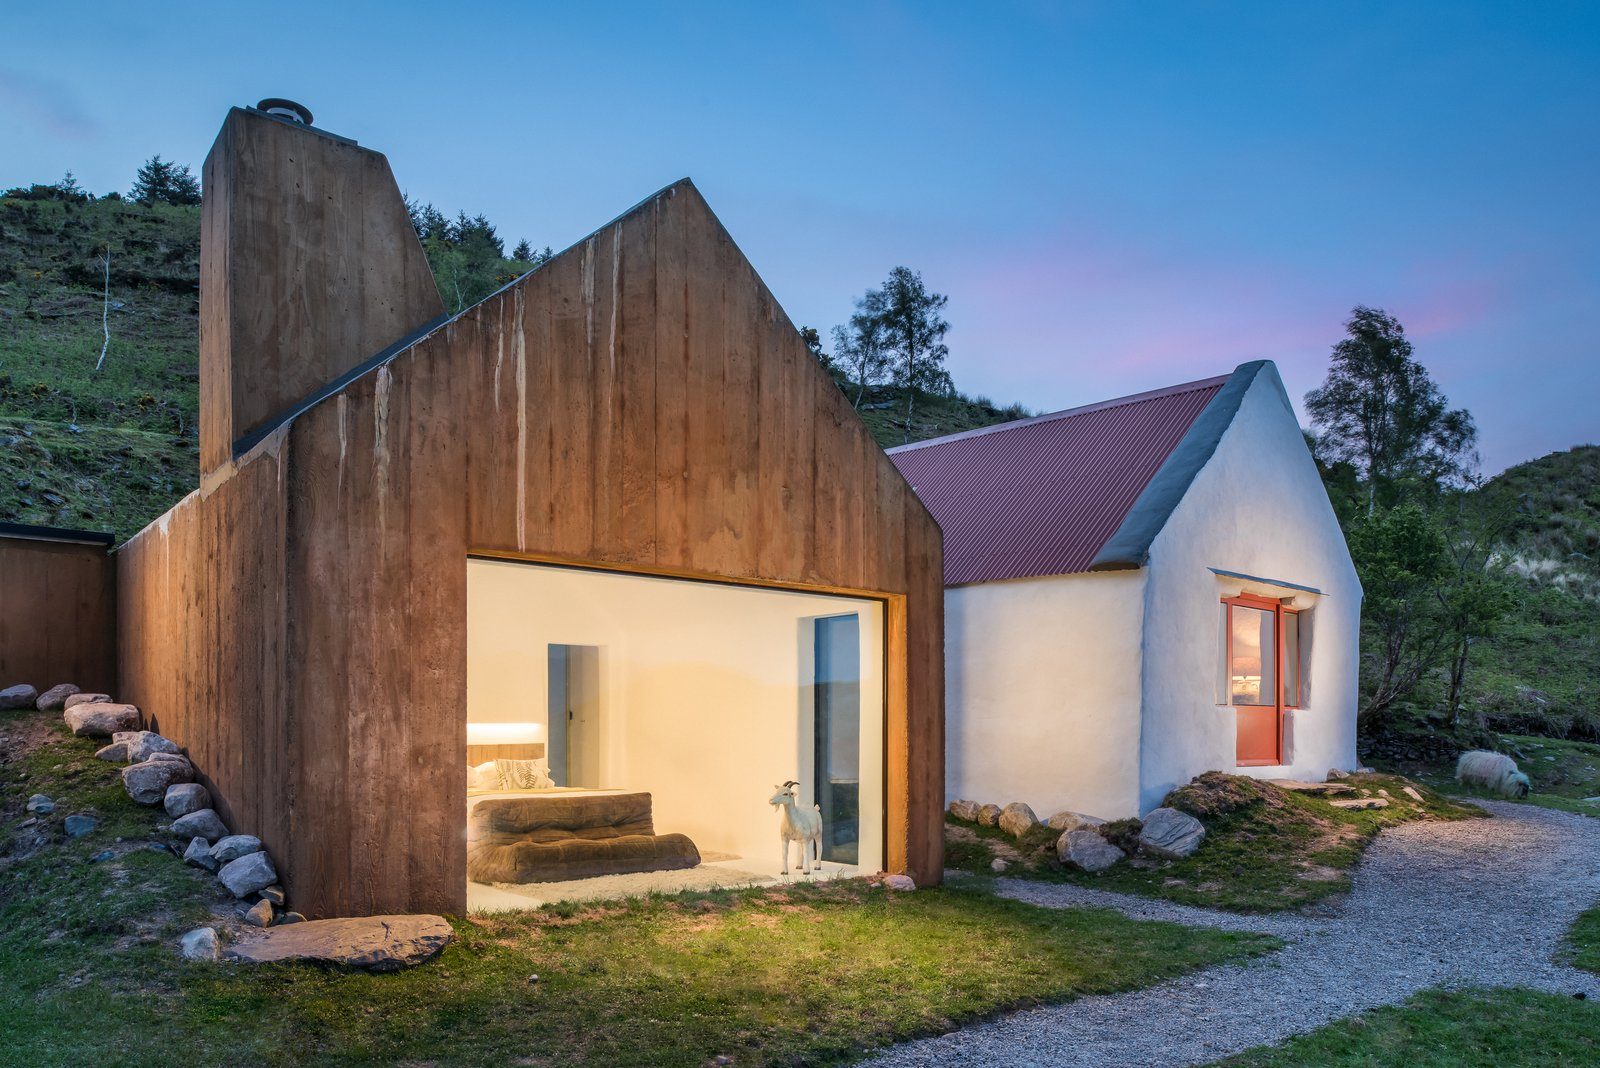 This cute cottage near the remote County Kerry lakeside town of Treangarriv has a modern poured concrete extension that mimics the original adjoining cottage. The color of the wood grain oxidized concrete matched the mountains in the background and helps the extension blend seamlessly into the landscape. The bathroom has a glass roof so guests can gaze up at the stars from a sunken bathtub. Tagged: Exterior, House, and Wood Siding Material.  Best Photos from 9 Traditional-Turned-Modern Cottages You Can Rent in the UK